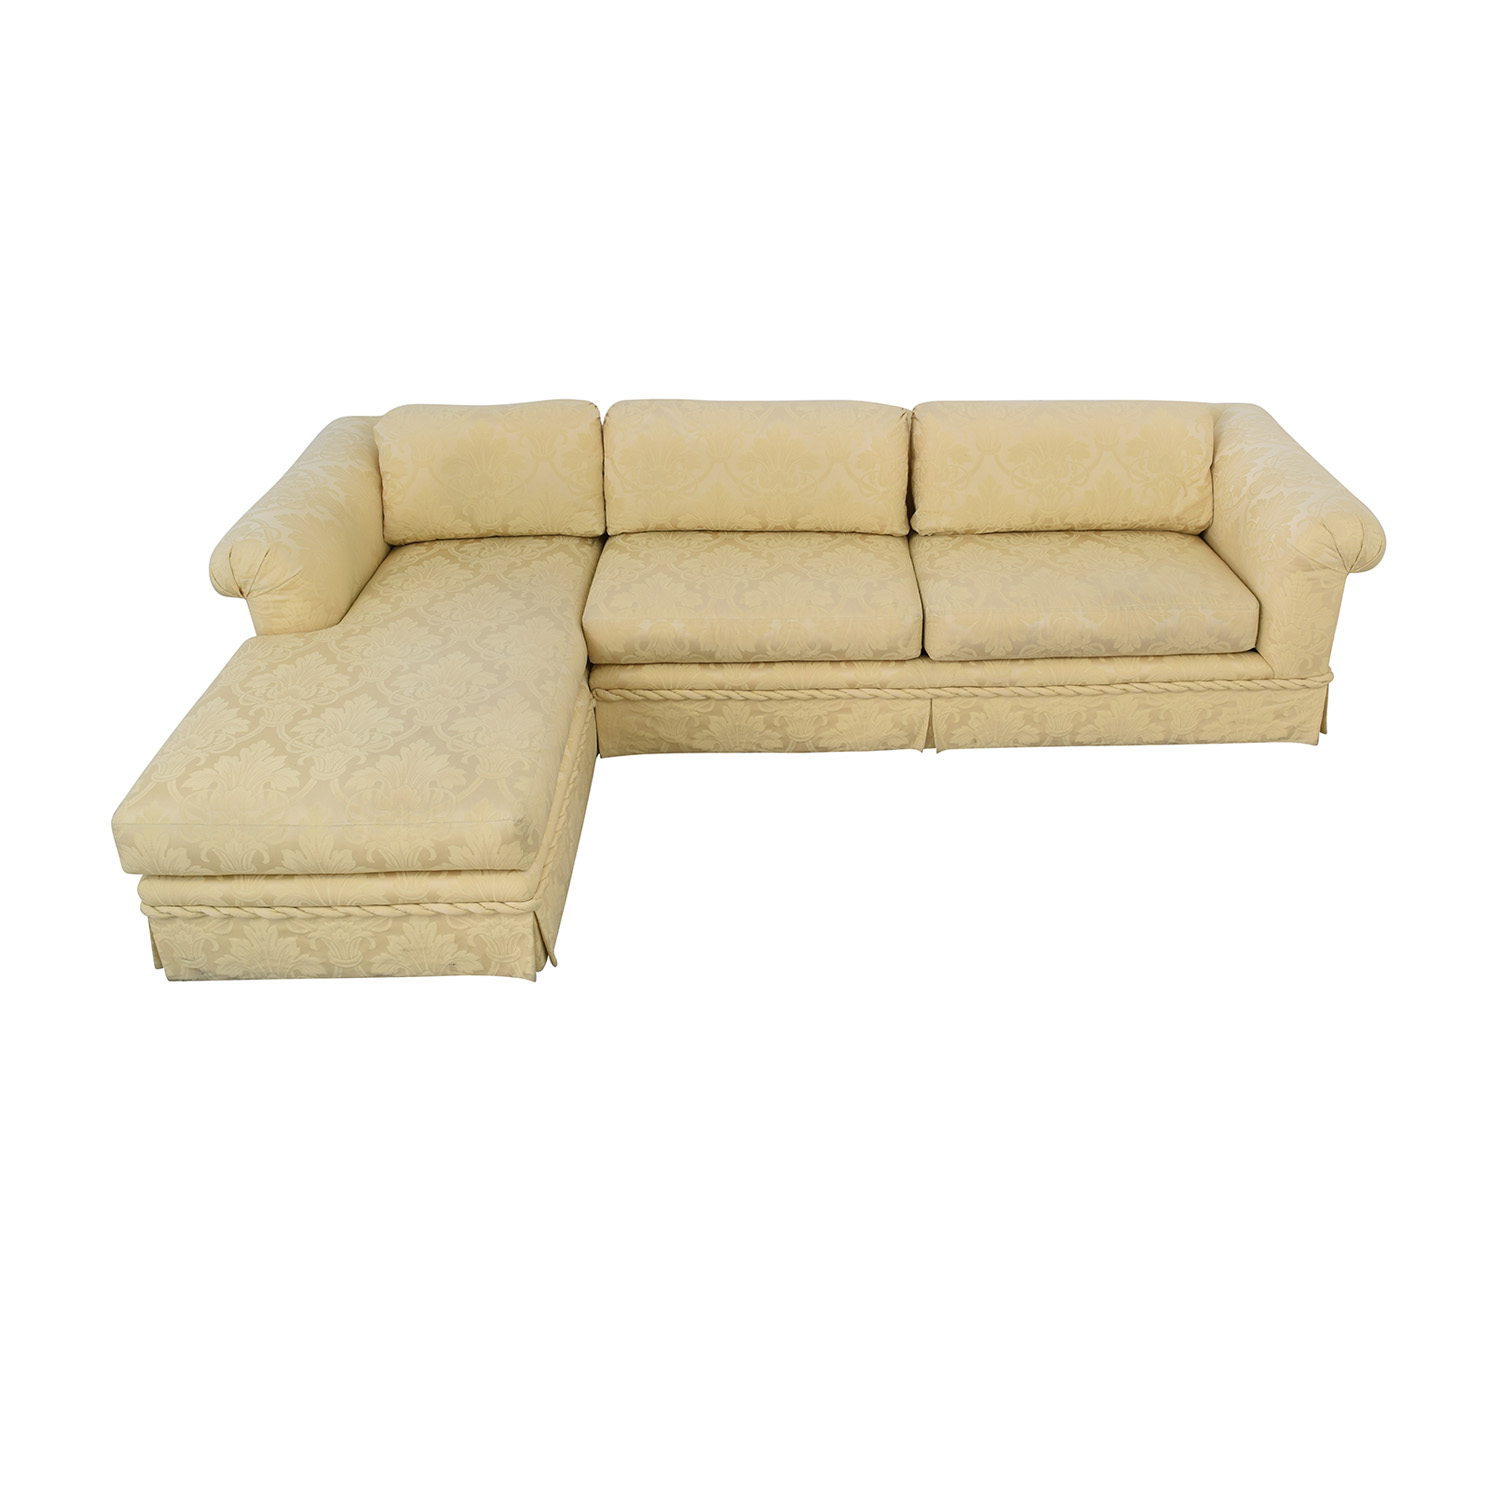 buy Kreiss Kreiss Chaise Sectional Sofa online